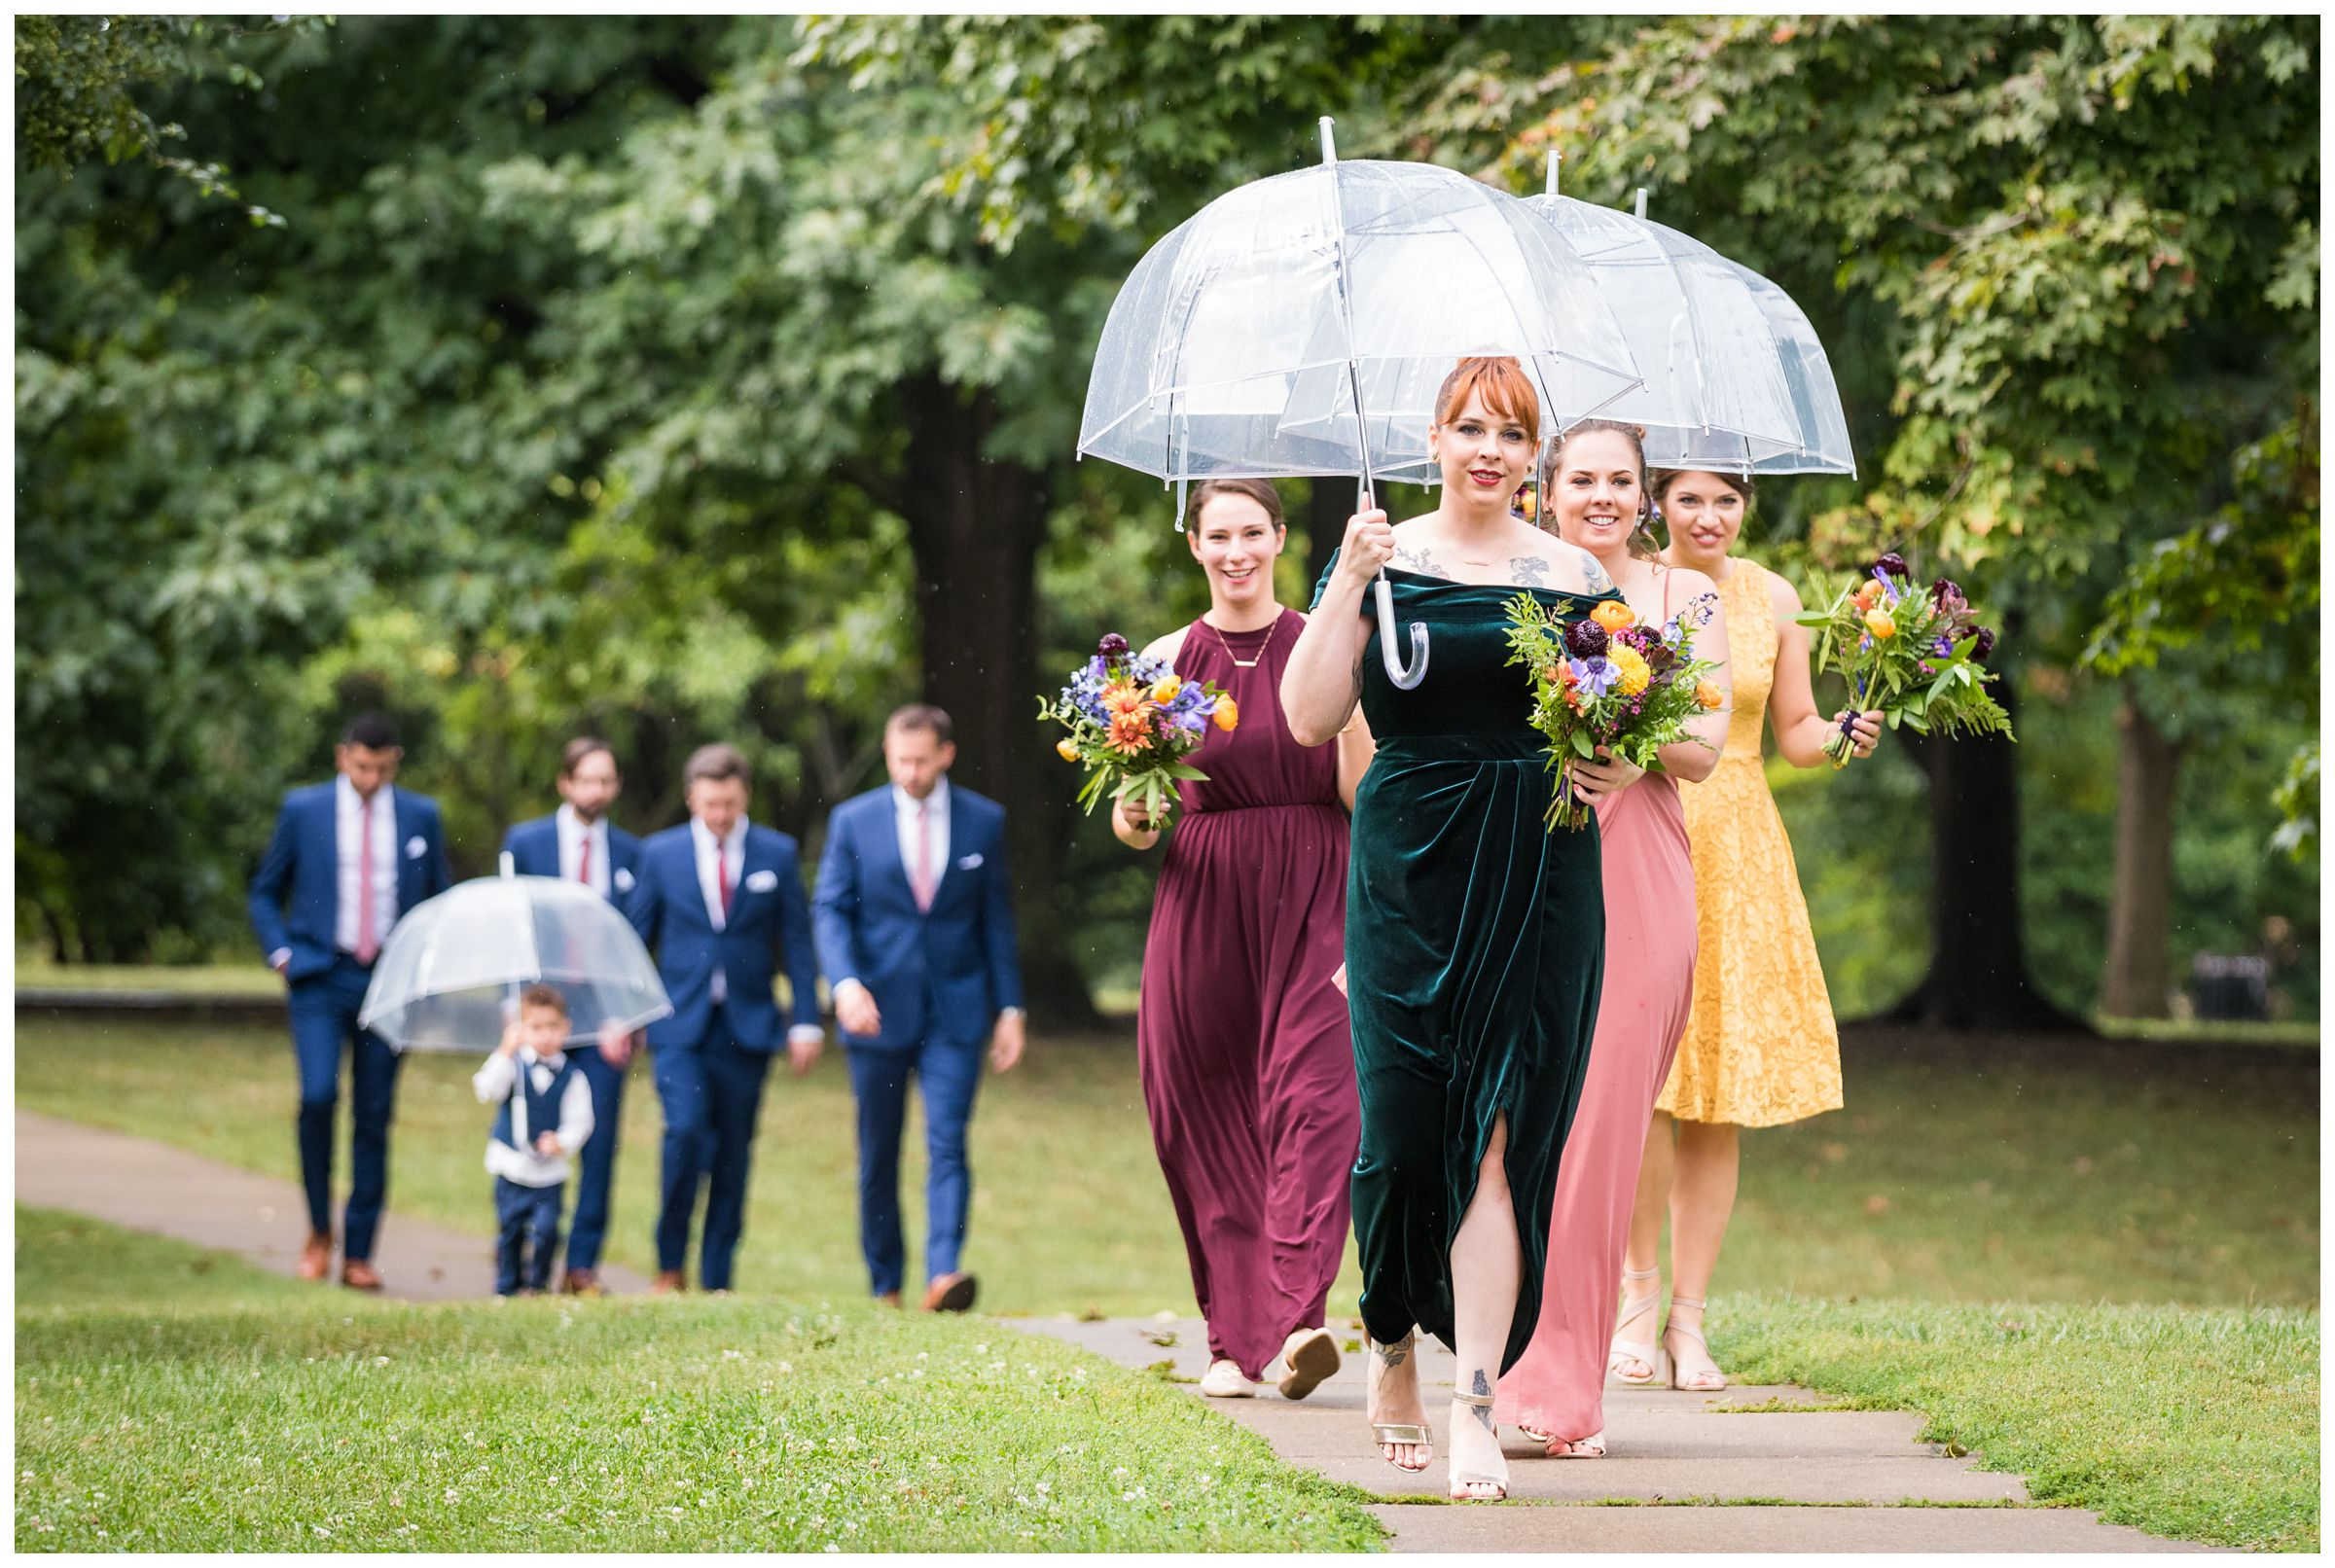 bridesmaids carrying umbrellas during a rainy wedding day in Goodale Park in Columbus